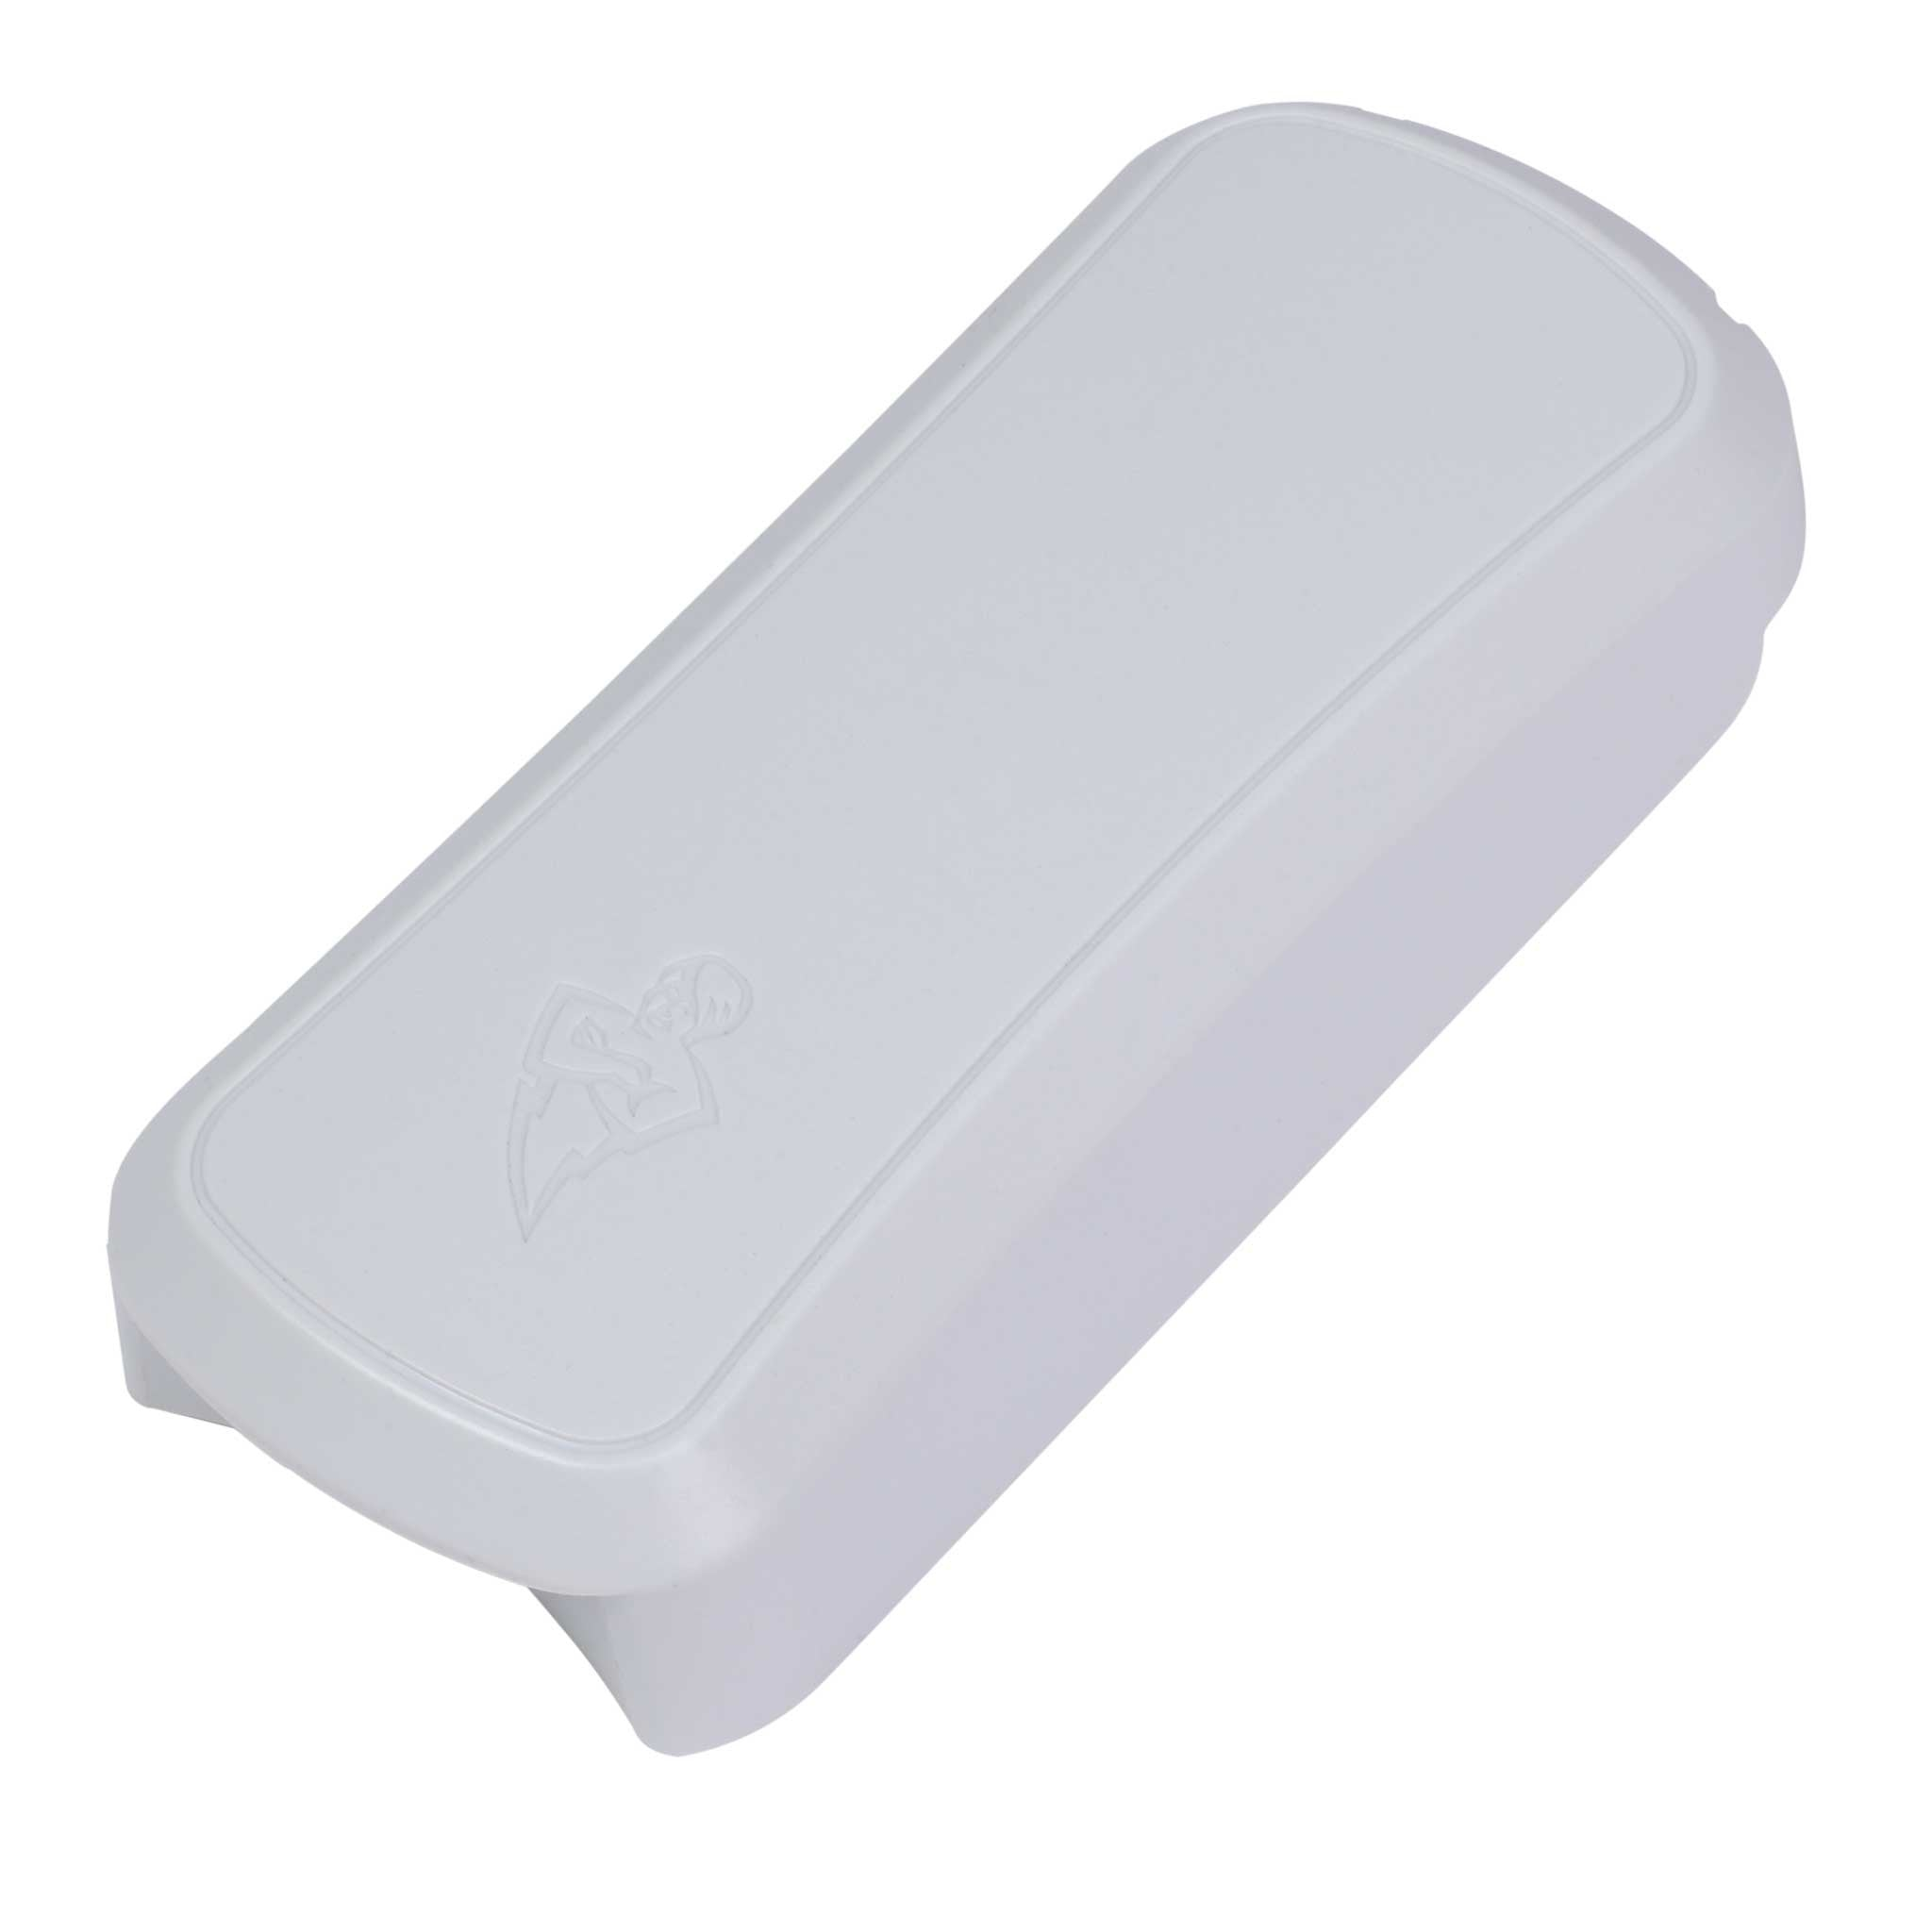 White Flip-Up Cover for Wireless Keyless Entry Pad (Cover Only)